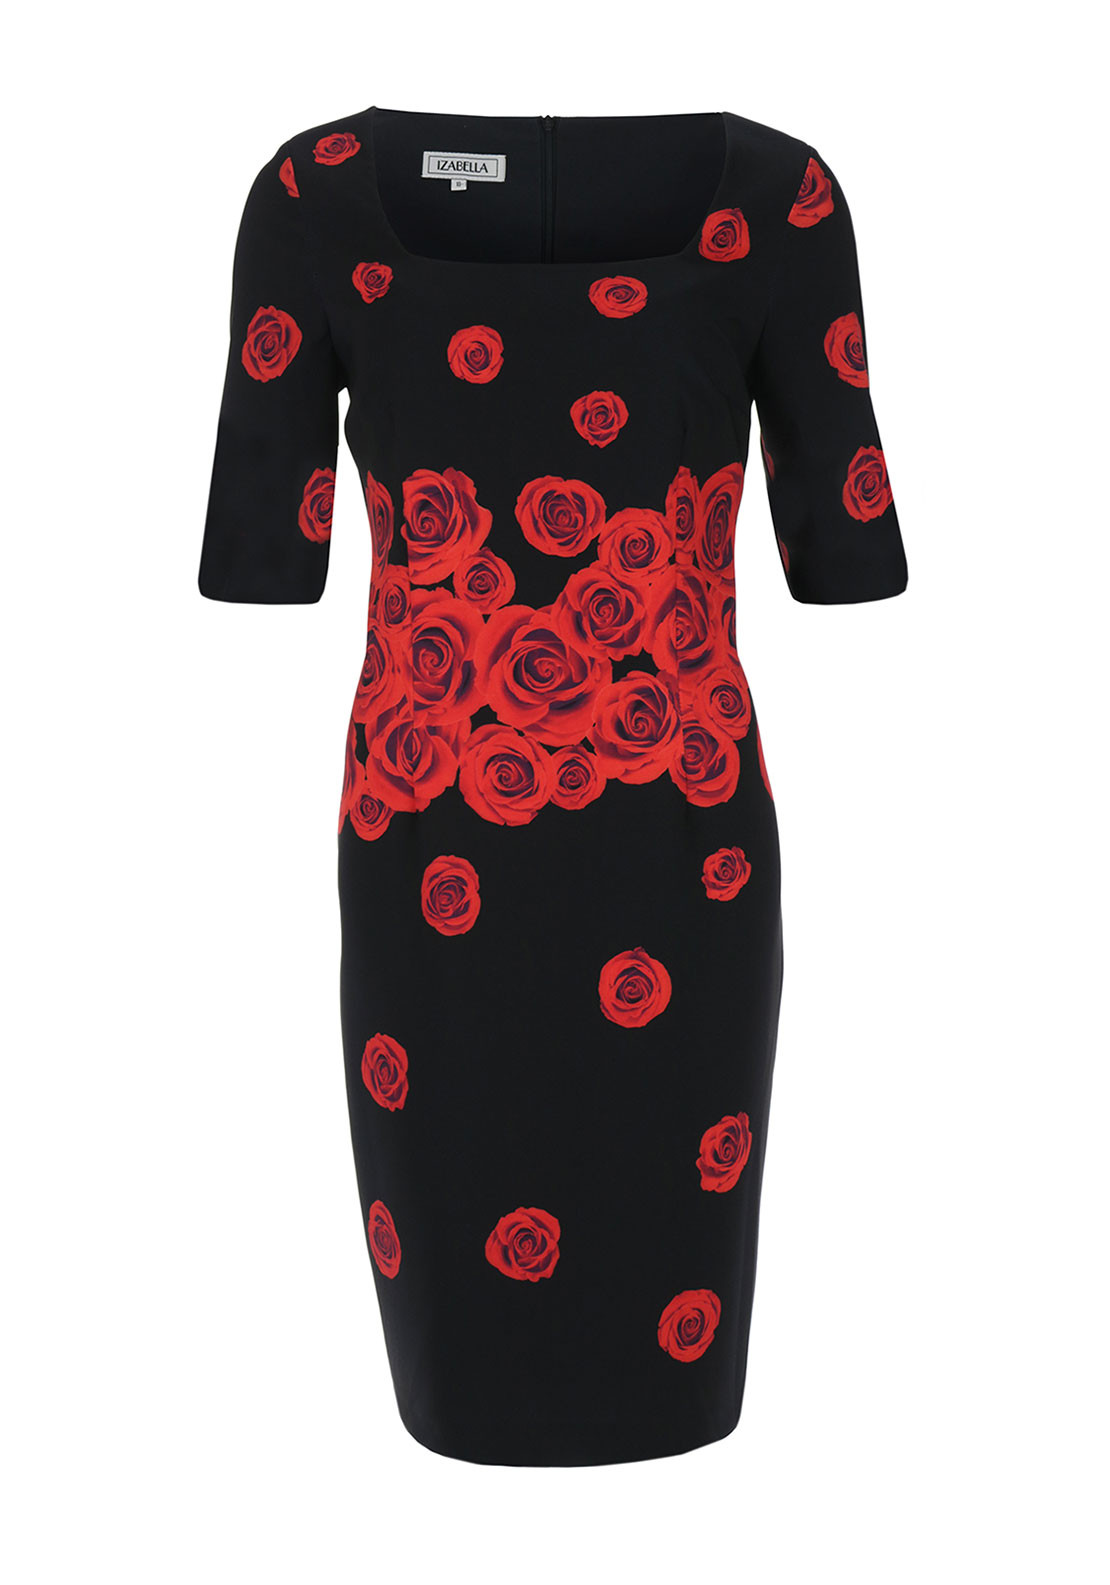 Lizabella Rose Print Pencil Dress, Red and Black